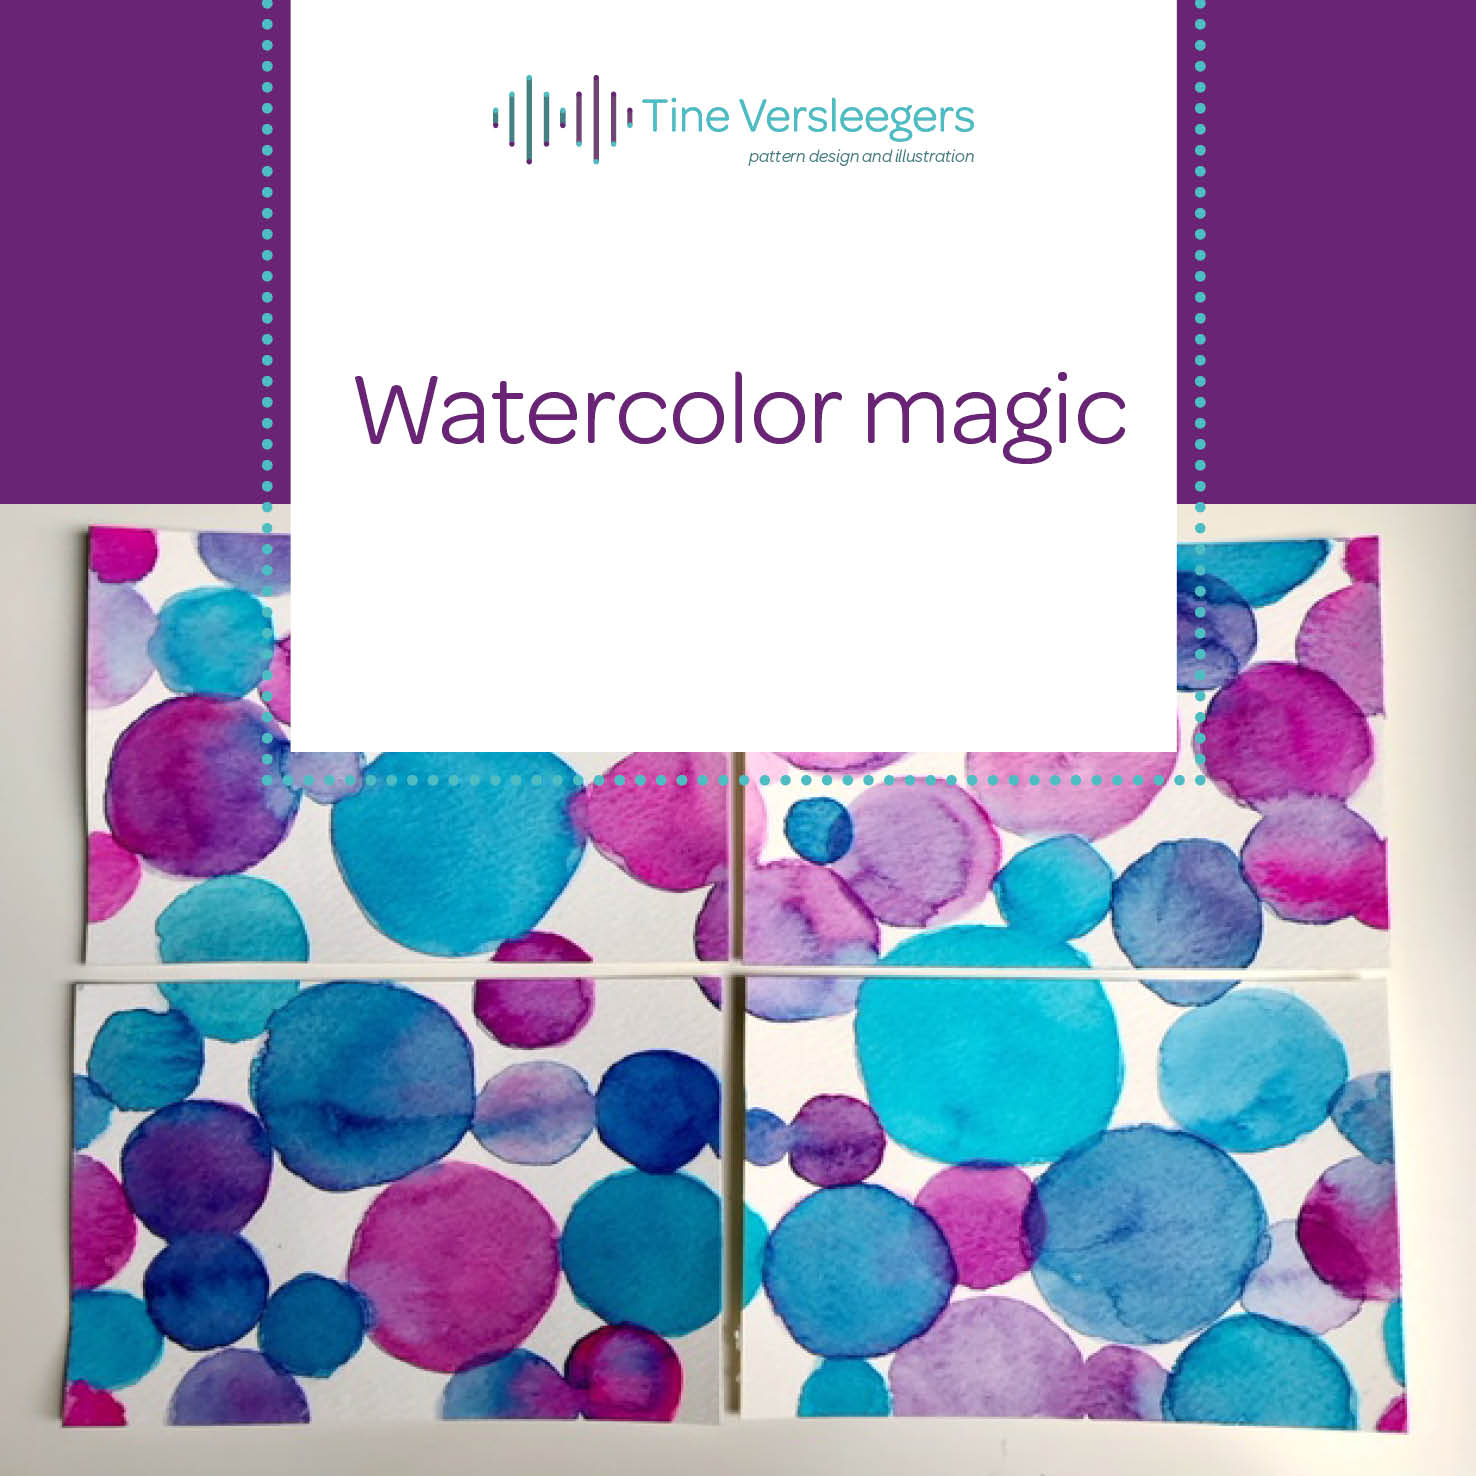 this is watercolor magic!